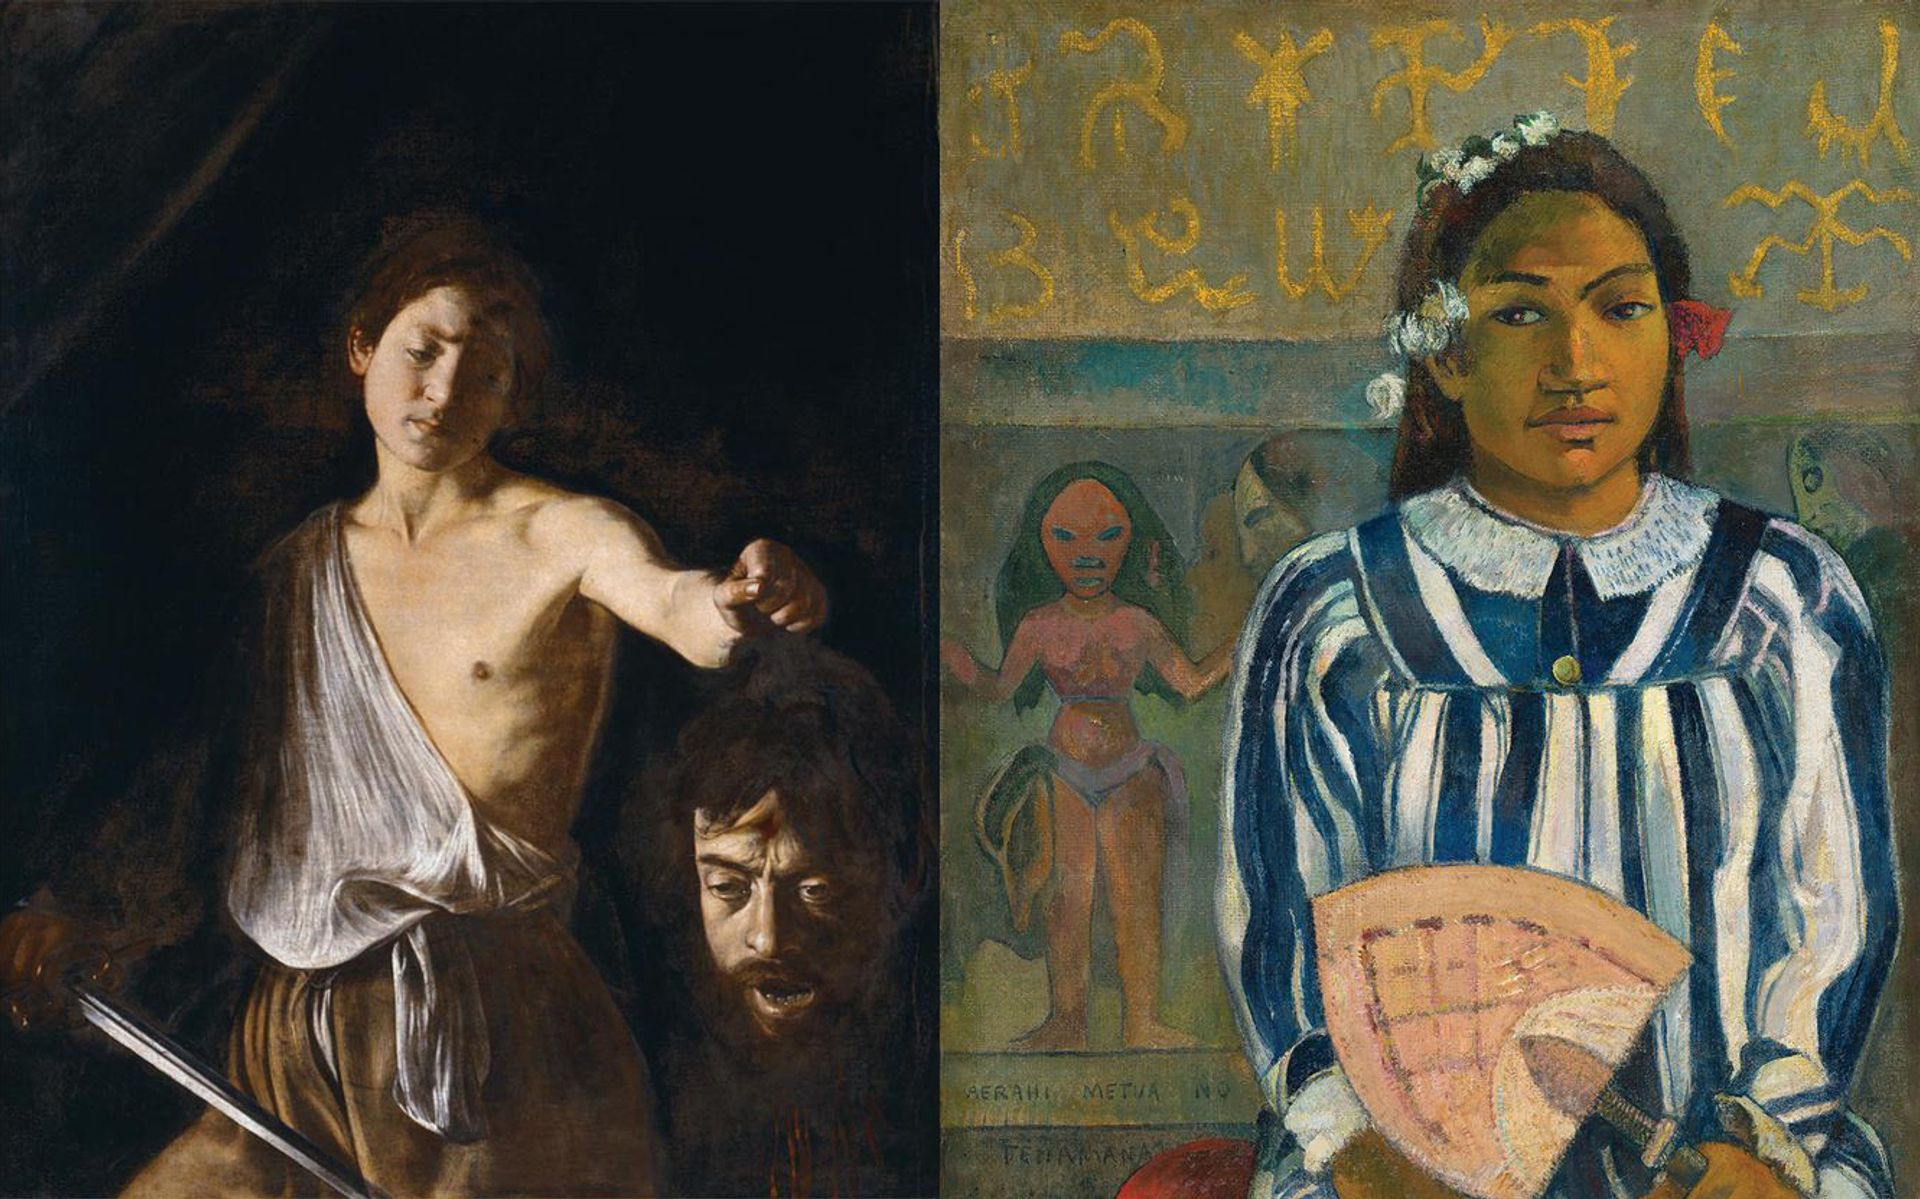 Immoral artists? Caravaggio, who murdered a man, and Gauguin, who had relationships with underage girls in Tahiti